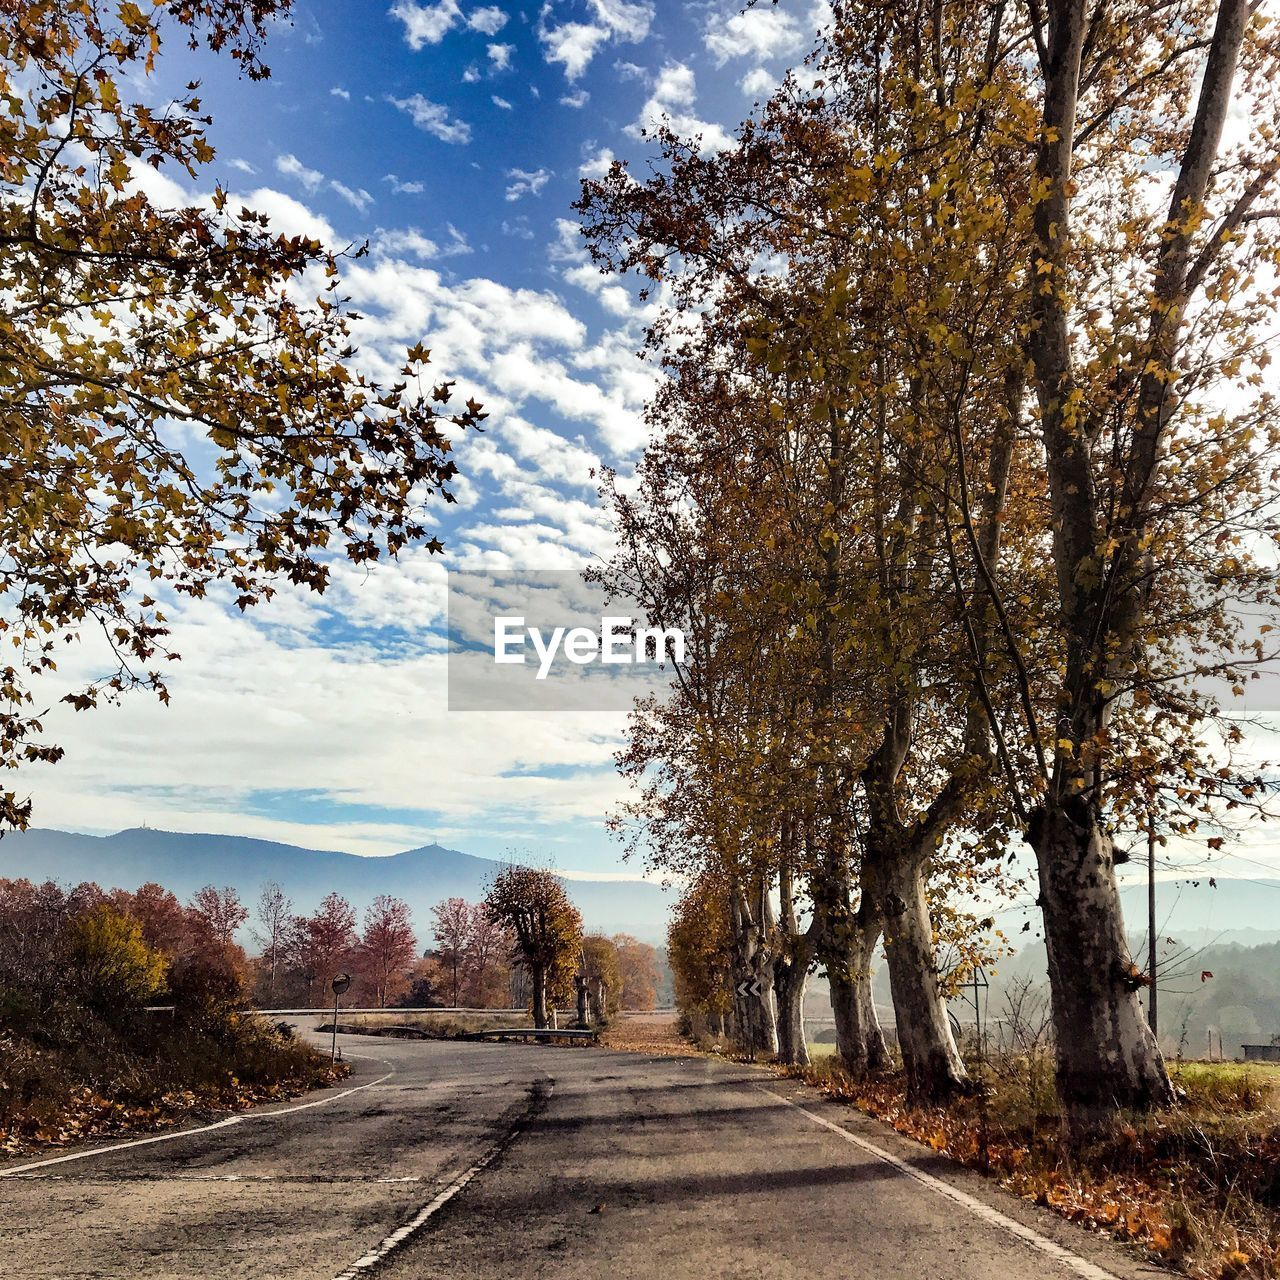 tree, the way forward, road, nature, diminishing perspective, sky, day, scenics, tranquility, tranquil scene, beauty in nature, outdoors, transportation, autumn, landscape, cloud - sky, no people, growth, branch